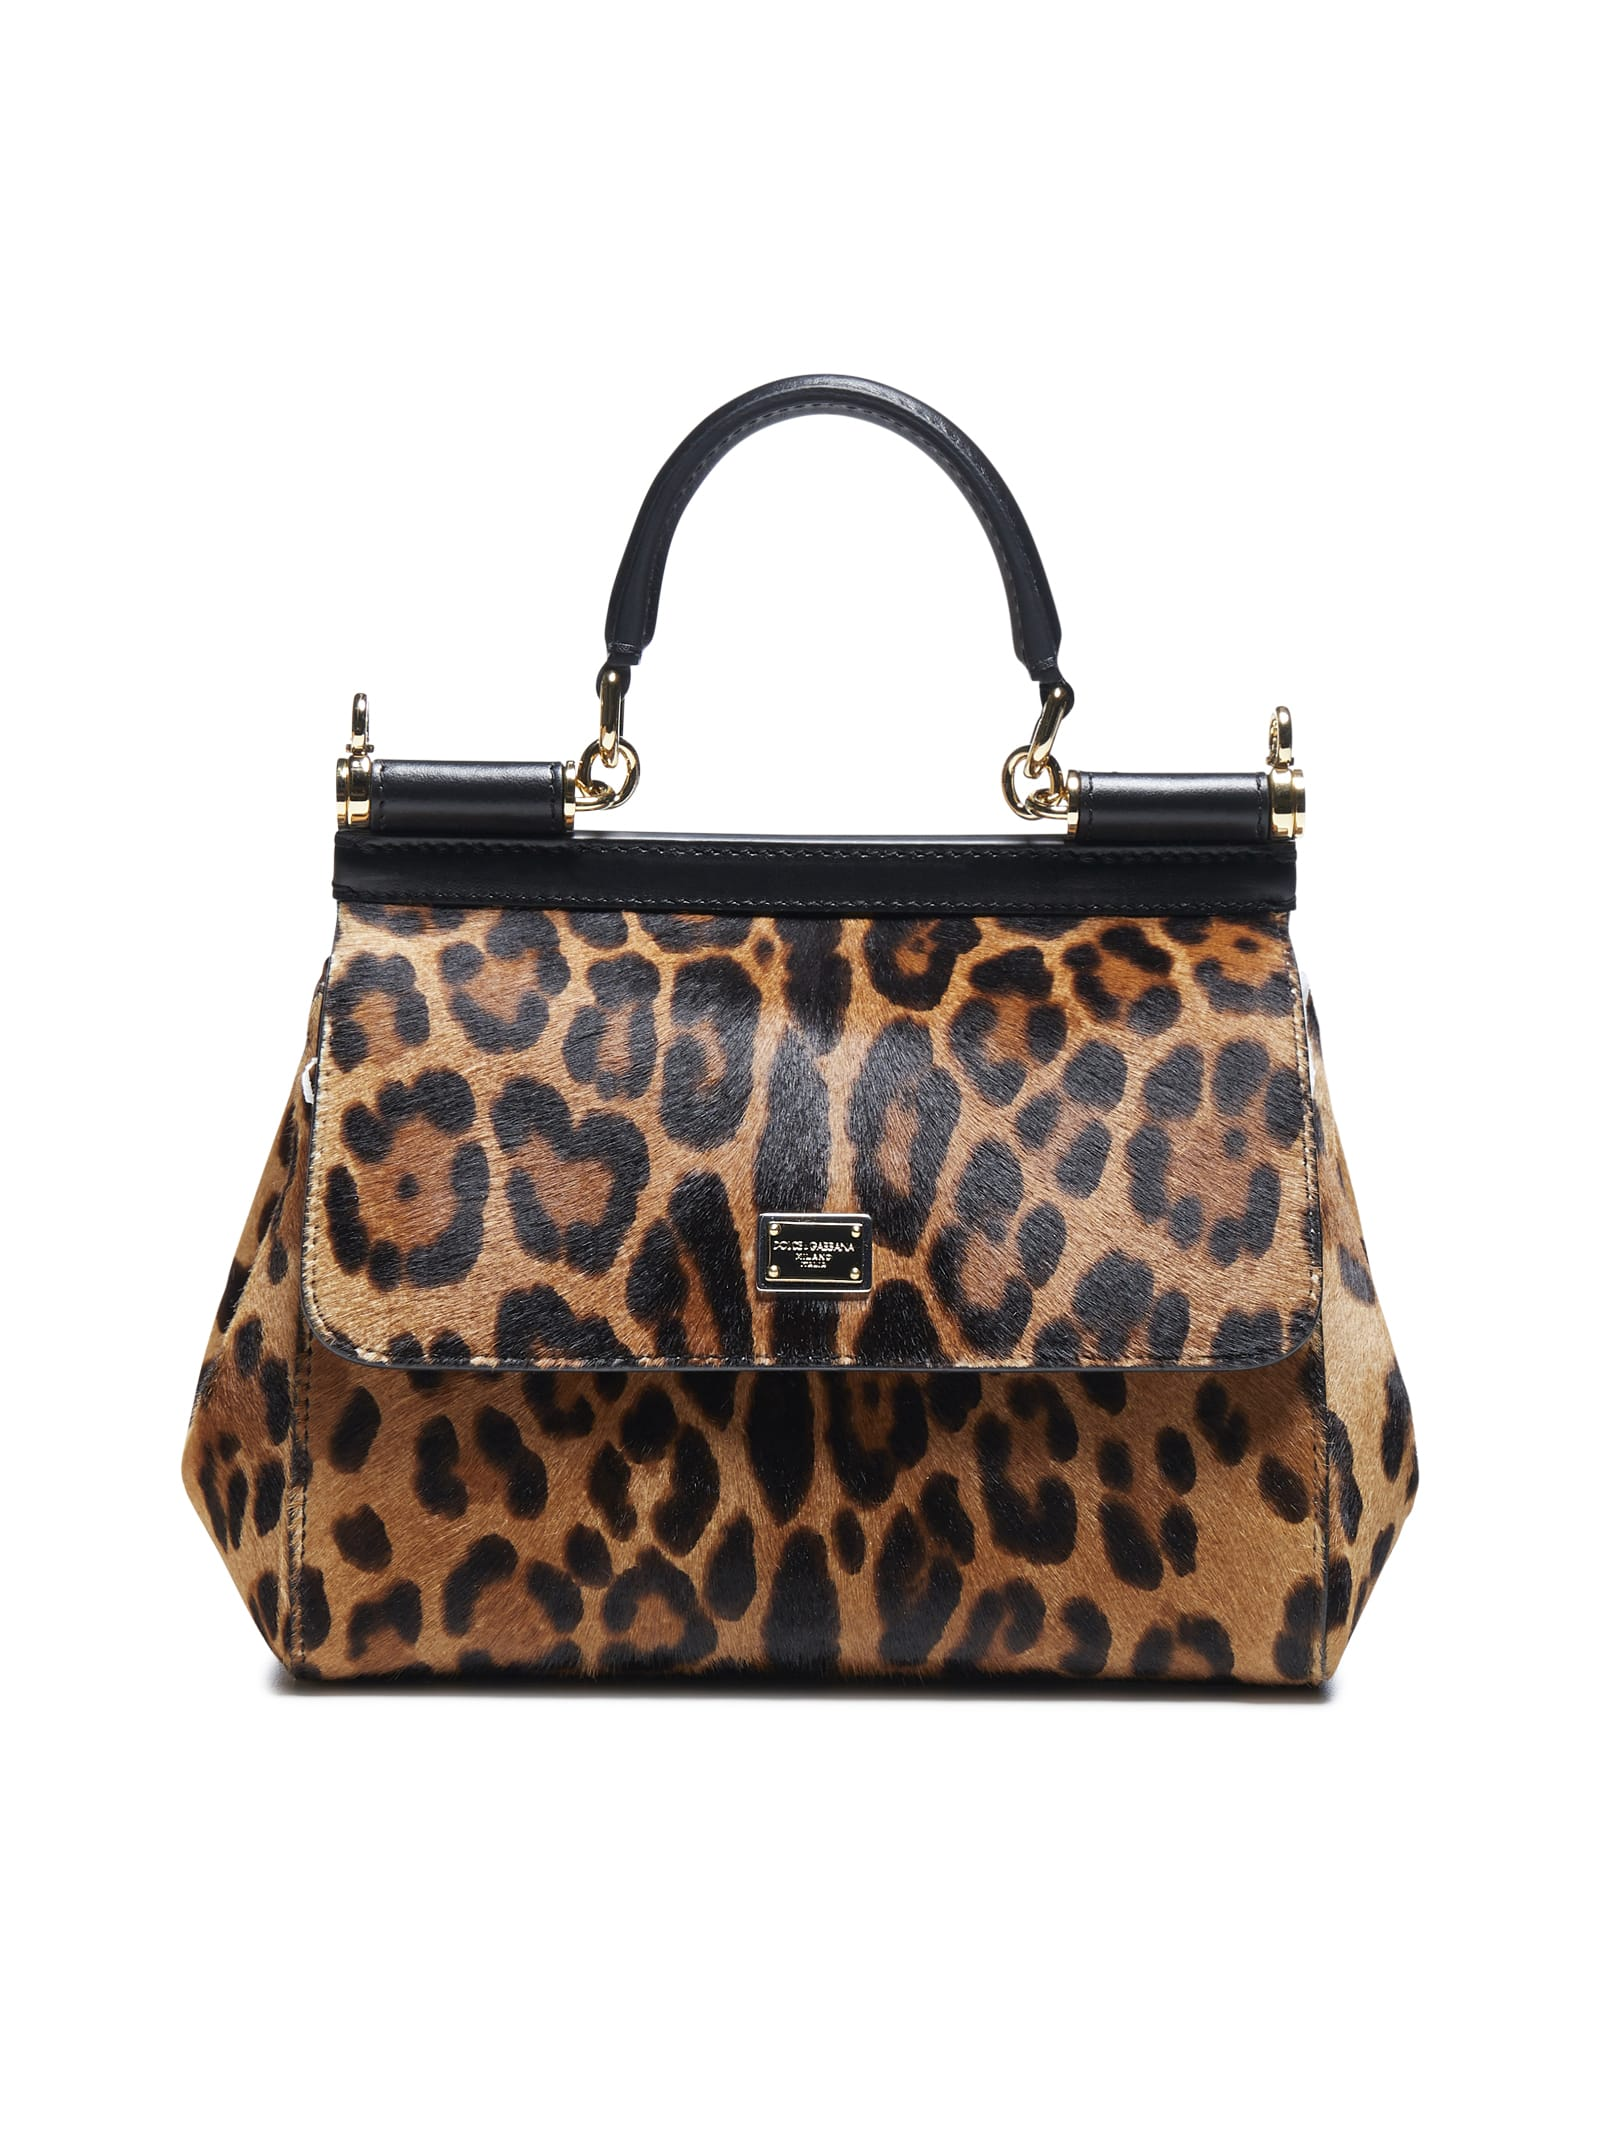 Dolce & Gabbana Sicily Leopard Print Ponyskin And Leather Bag